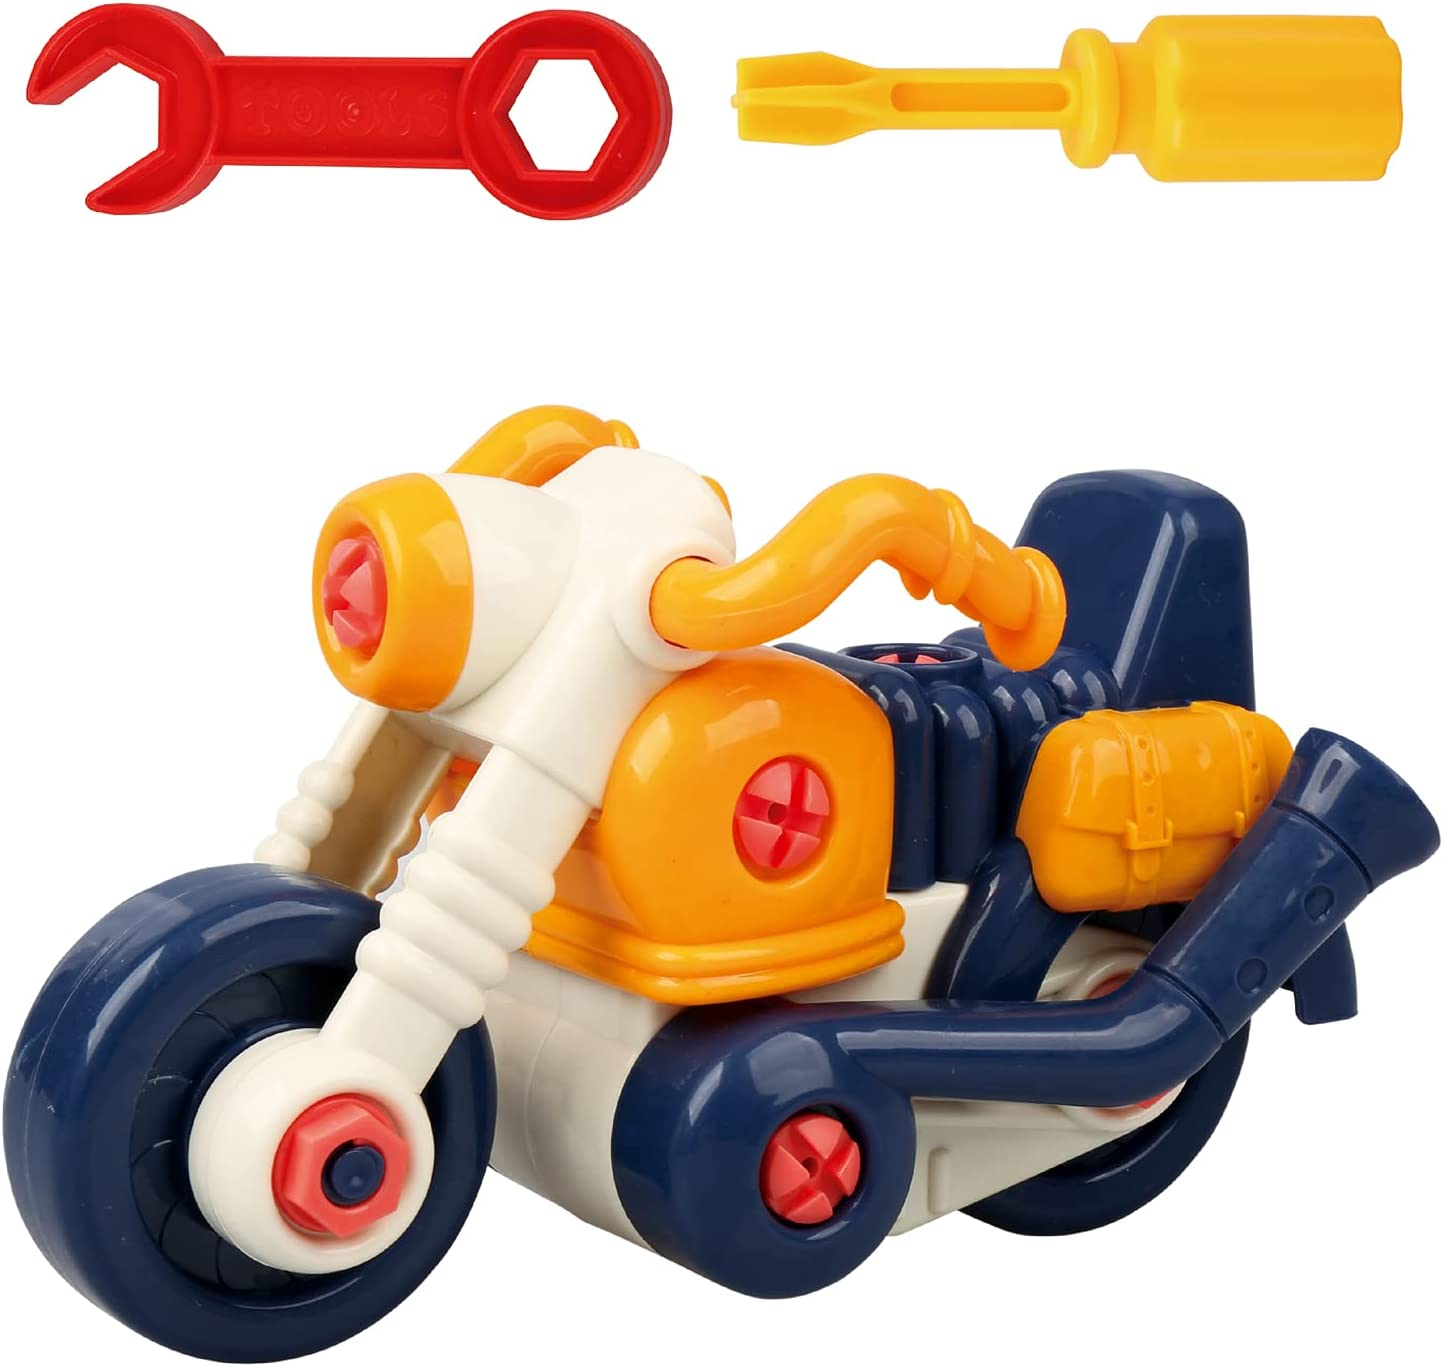 YI JIA TOYS Take Apart Toy for 3 Sales for sale service and Boys Up-Assemble Car A Aged